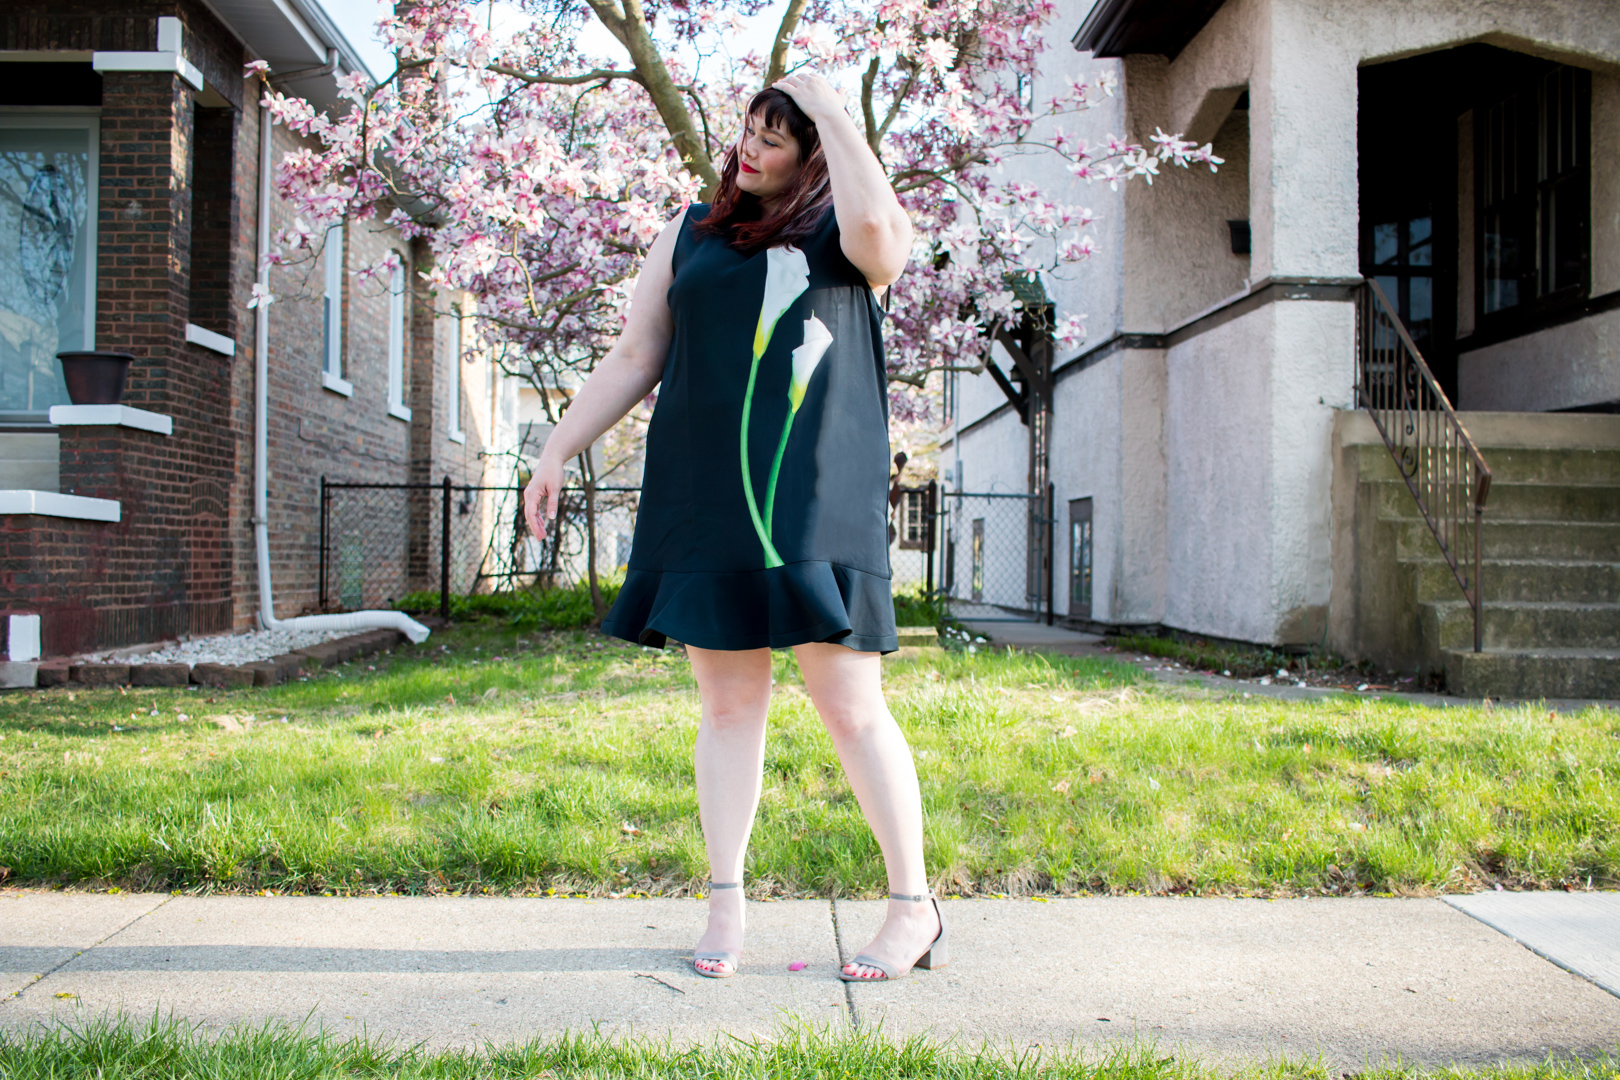 7cb5cfa2e0 Plus Size Blogger wearing Calla Lily Dress from Victoria Beckham x Target  collection